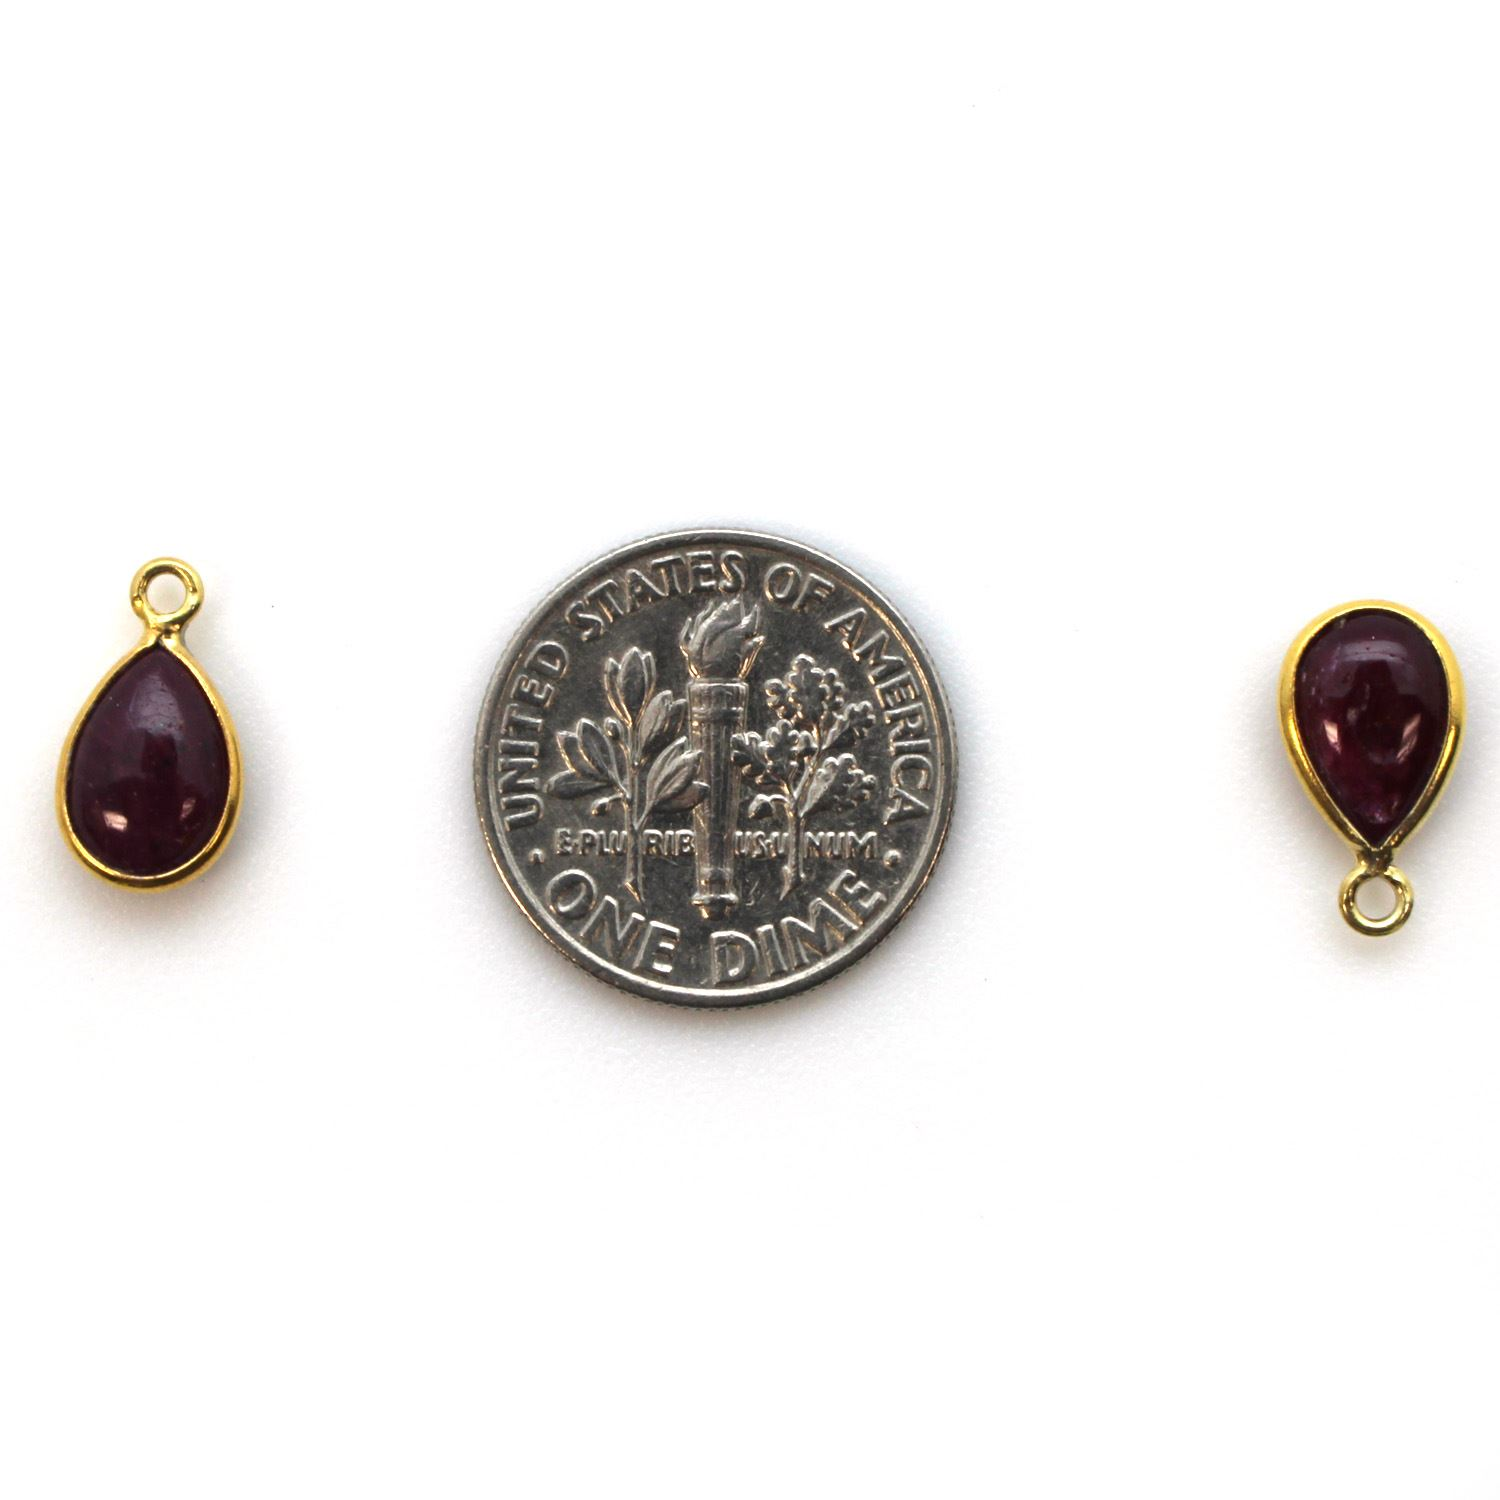 Bezel Charm Pendant - Gold Plated Sterling Silver Charm - Natural Ruby - Tiny Teardrop Shape